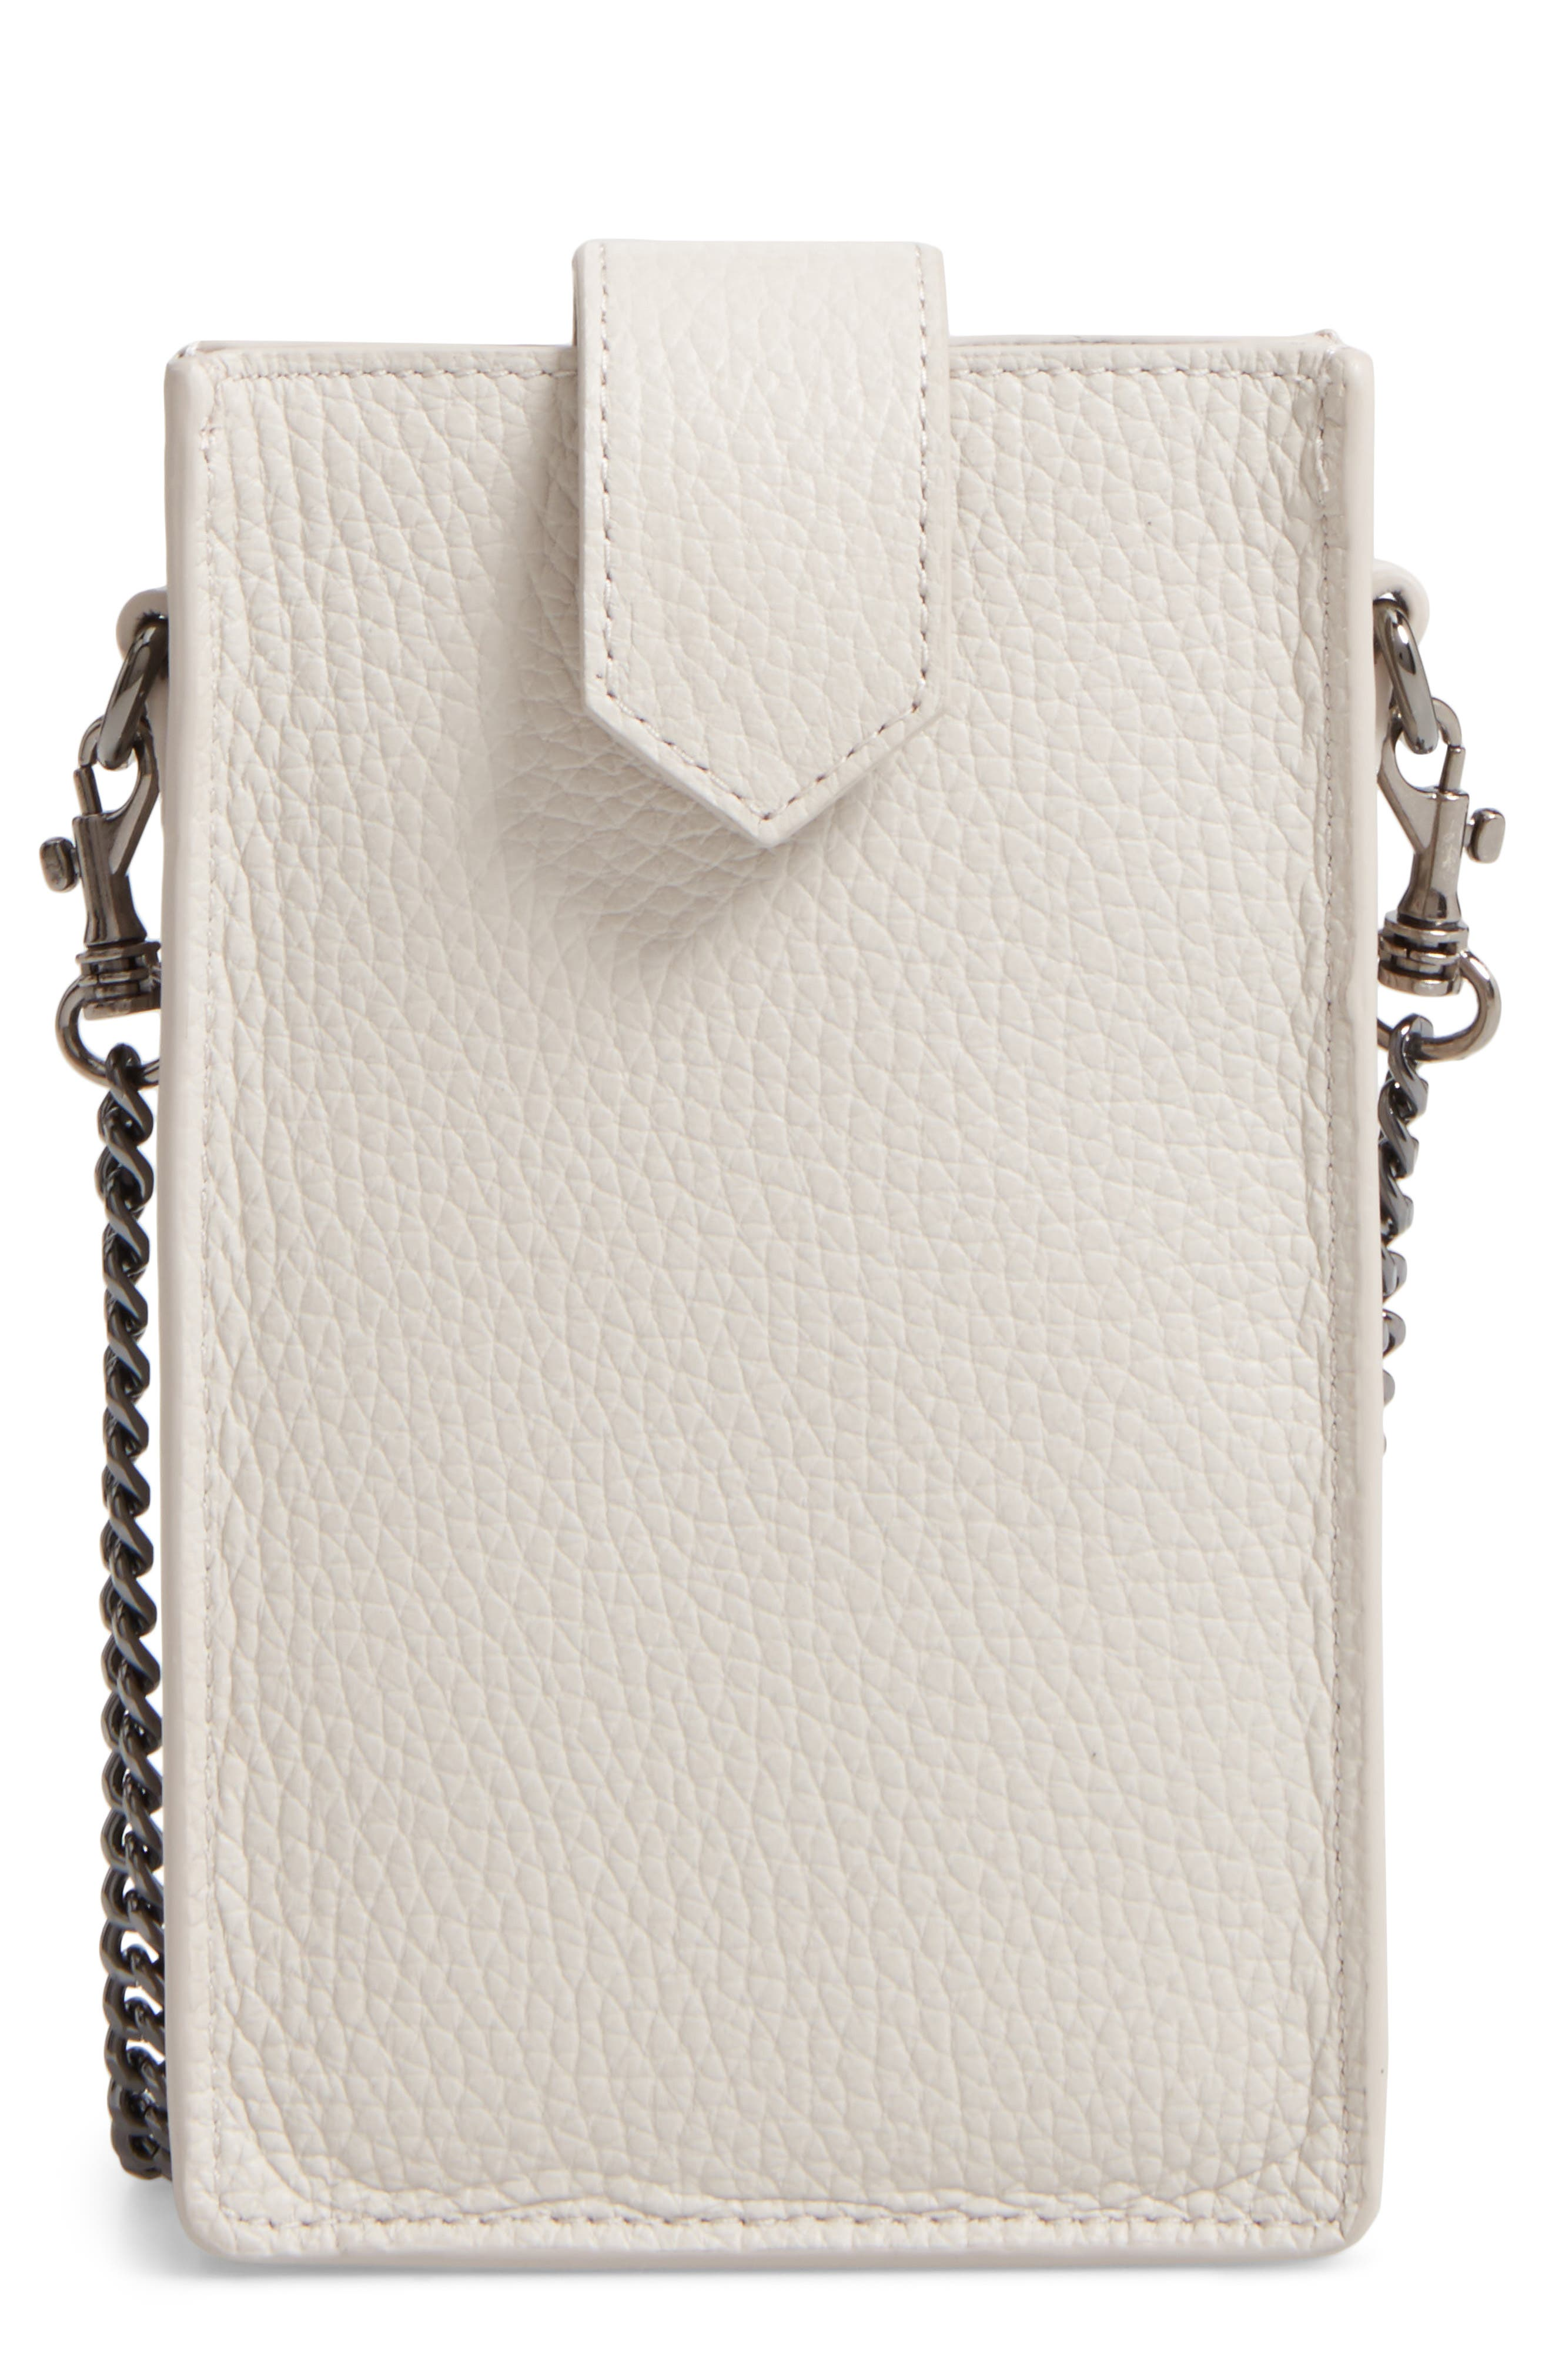 Botkier Leather Phone Crossbody Case (Nordstrom Exclusive)